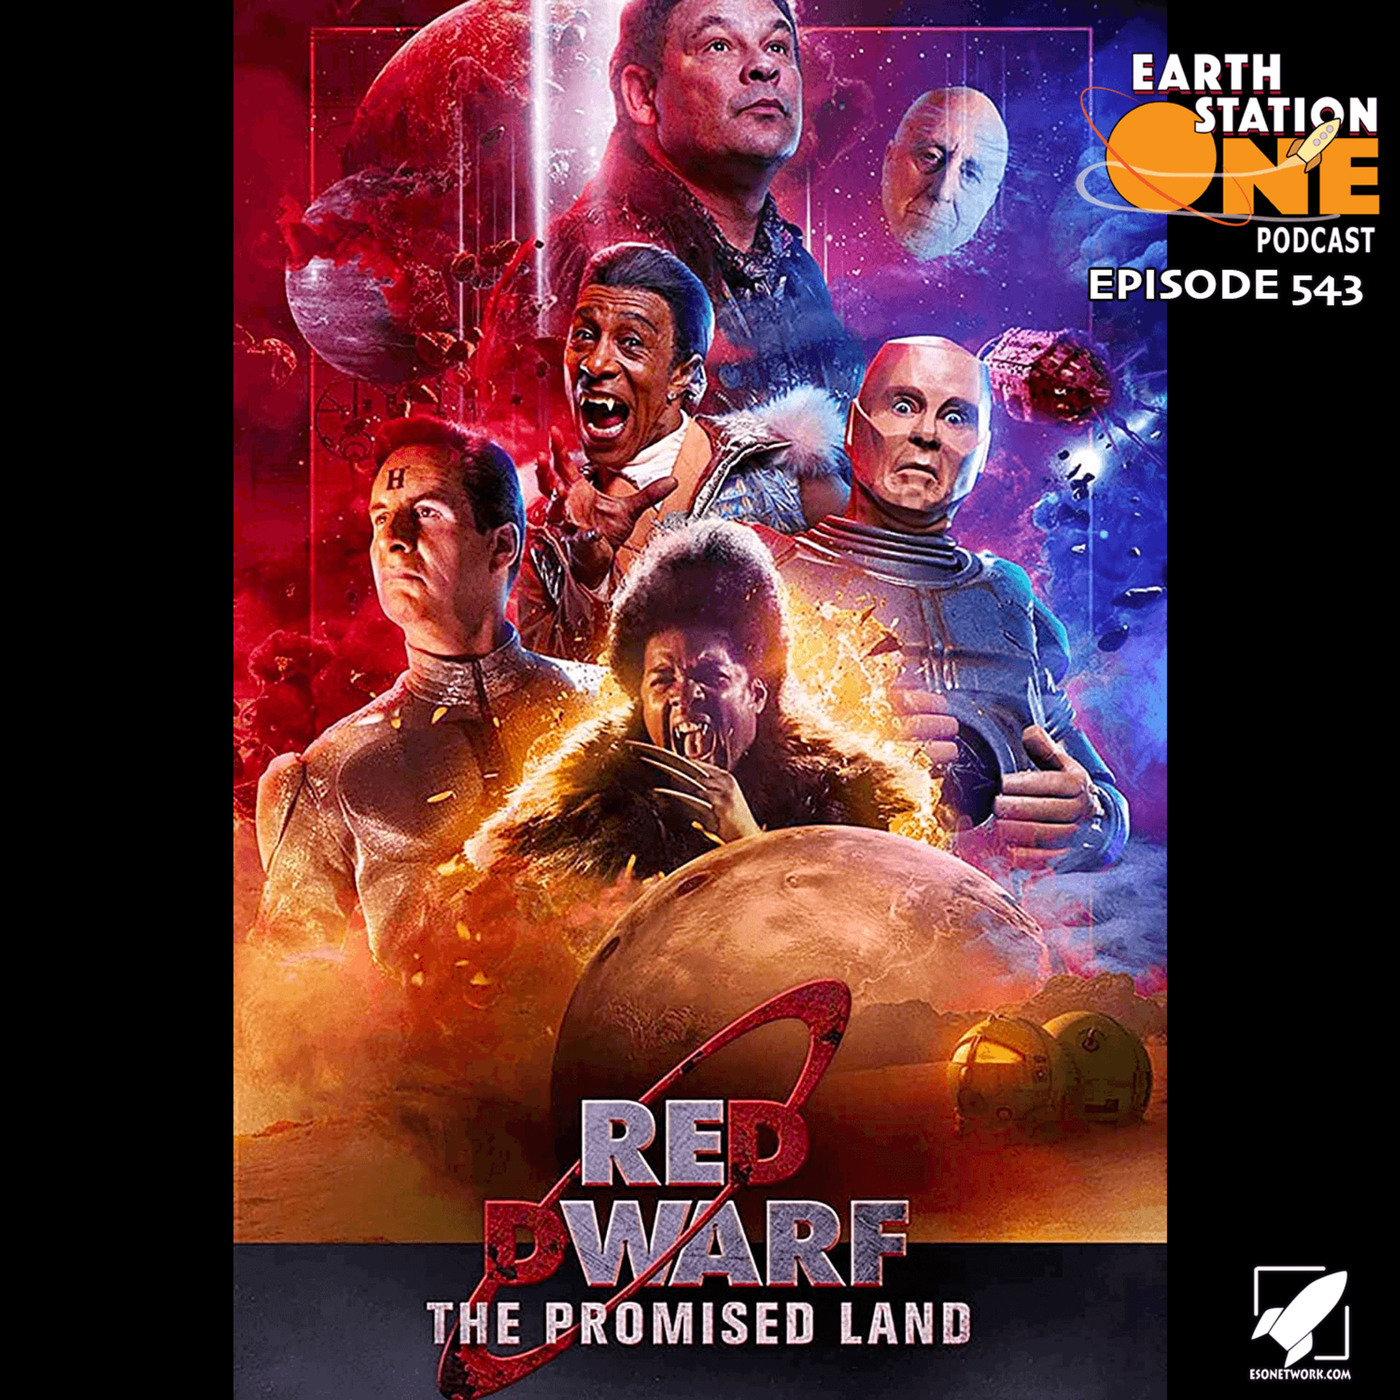 The Earth Station One Podcast reddwarfpromisedland: The Earth Station One Podcast – Red Dwarf  The Promised Land